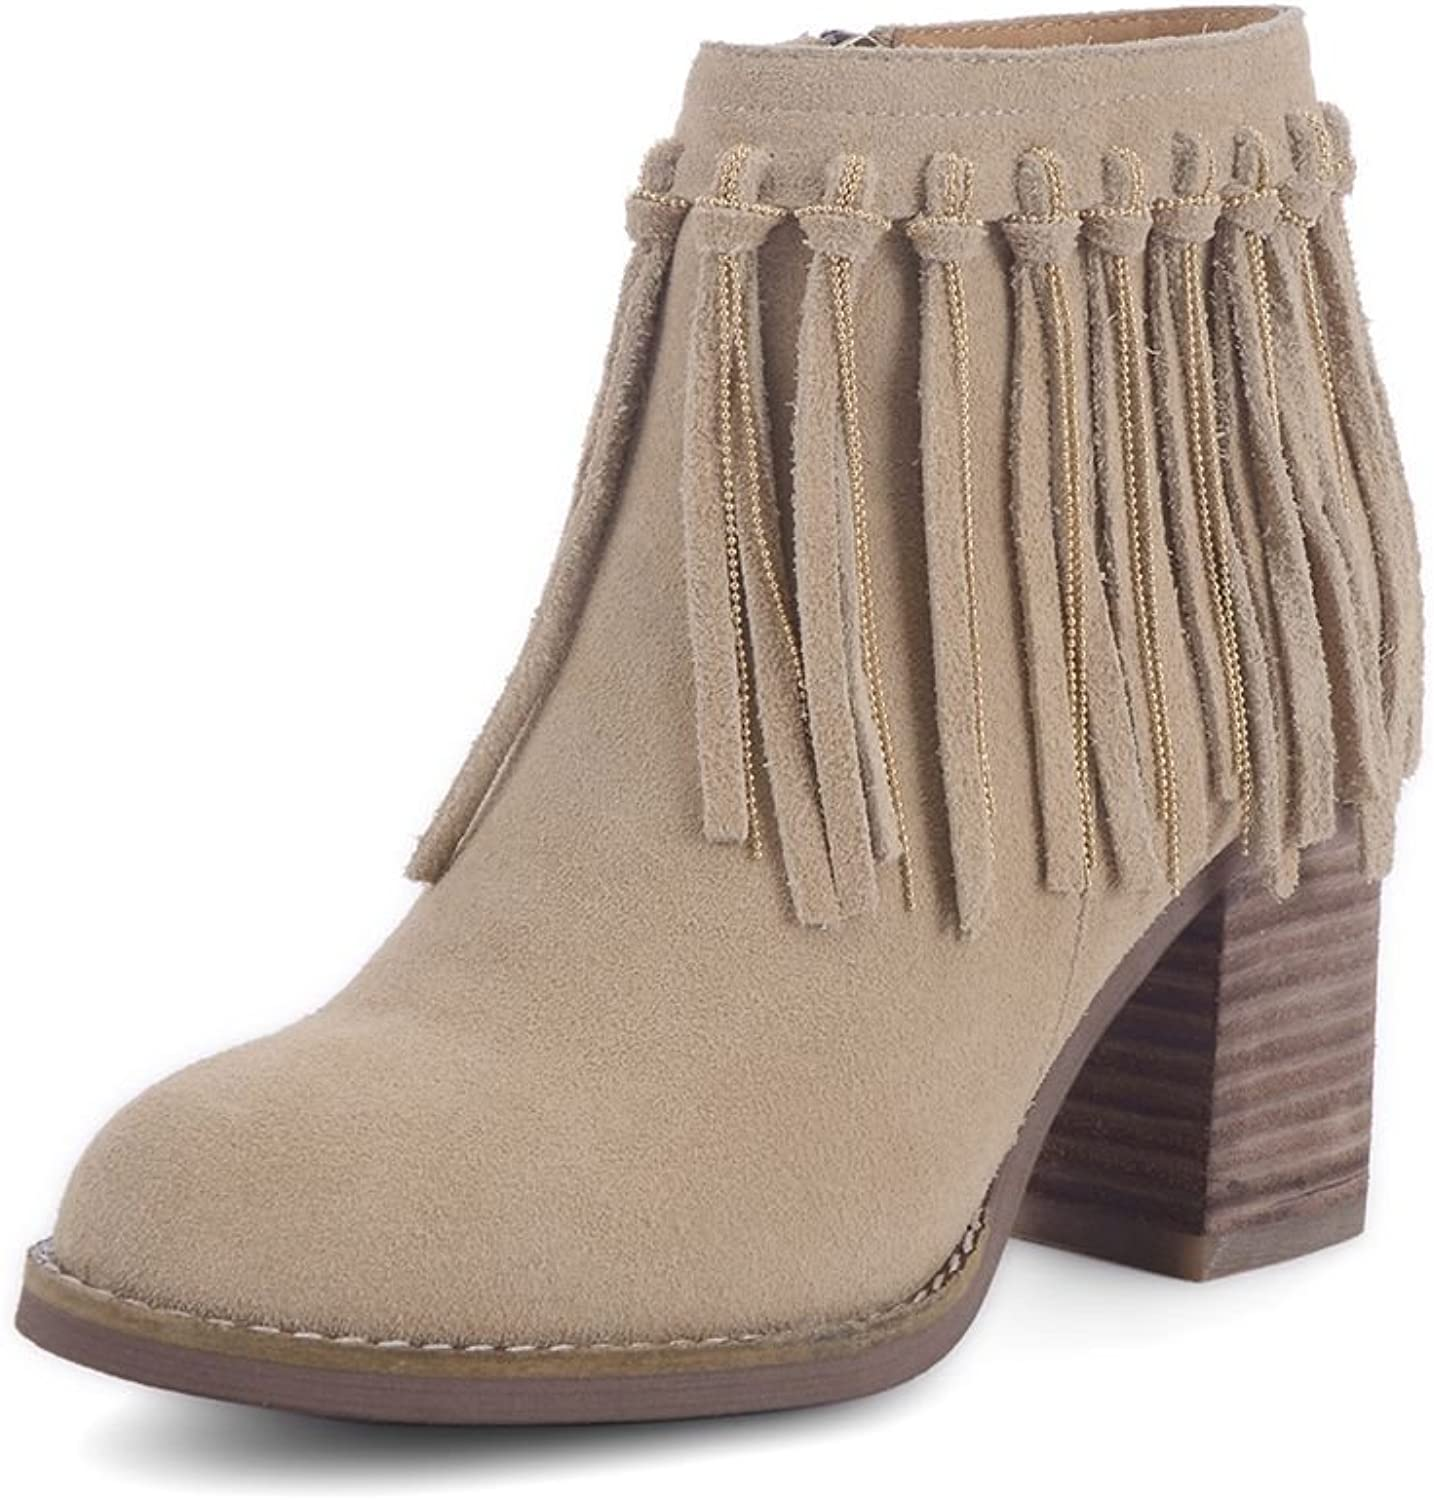 SaraIris Fringe Chunky Heels Ankle Boots for Women